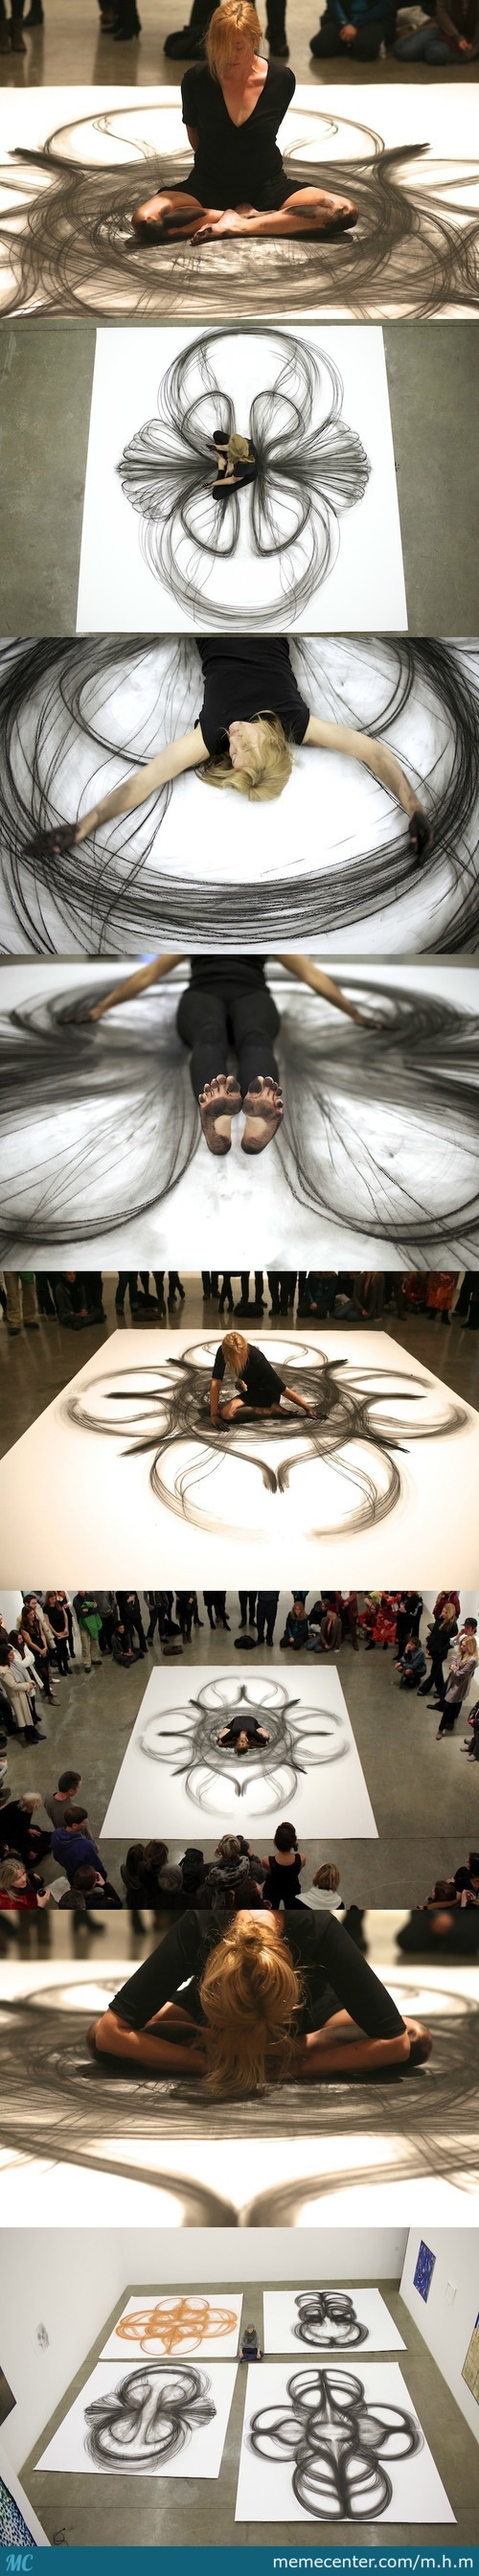 Life-Size Art Using Just Her Body And A Piece Of Charcoal By Artist Heather Hansen